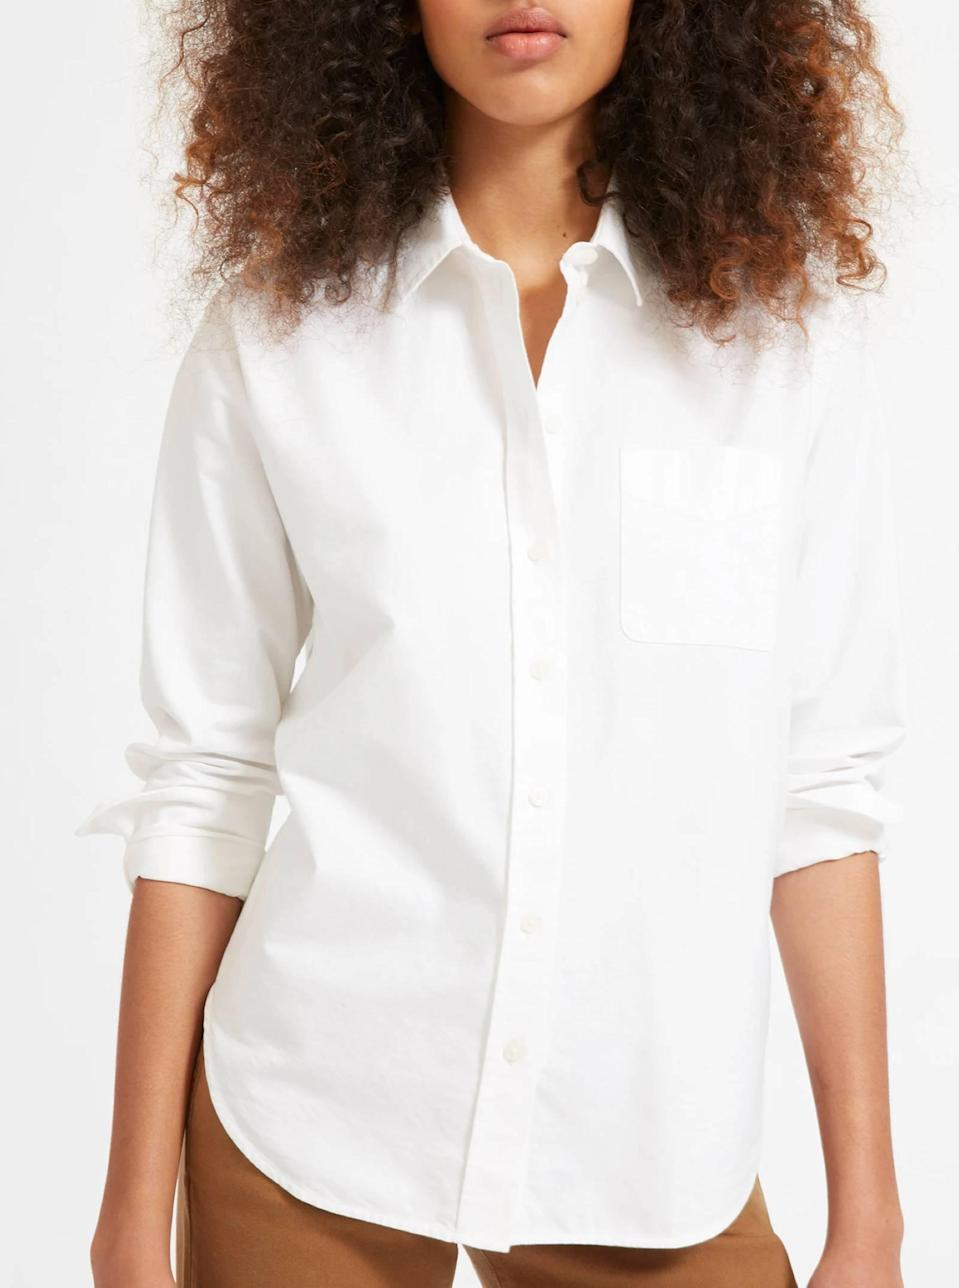 """$68, Everlane. <a href=""""https://www.everlane.com/products/womens-japanese-oxford-shirt-white"""" rel=""""nofollow noopener"""" target=""""_blank"""" data-ylk=""""slk:Get it now!"""" class=""""link rapid-noclick-resp"""">Get it now!</a>"""